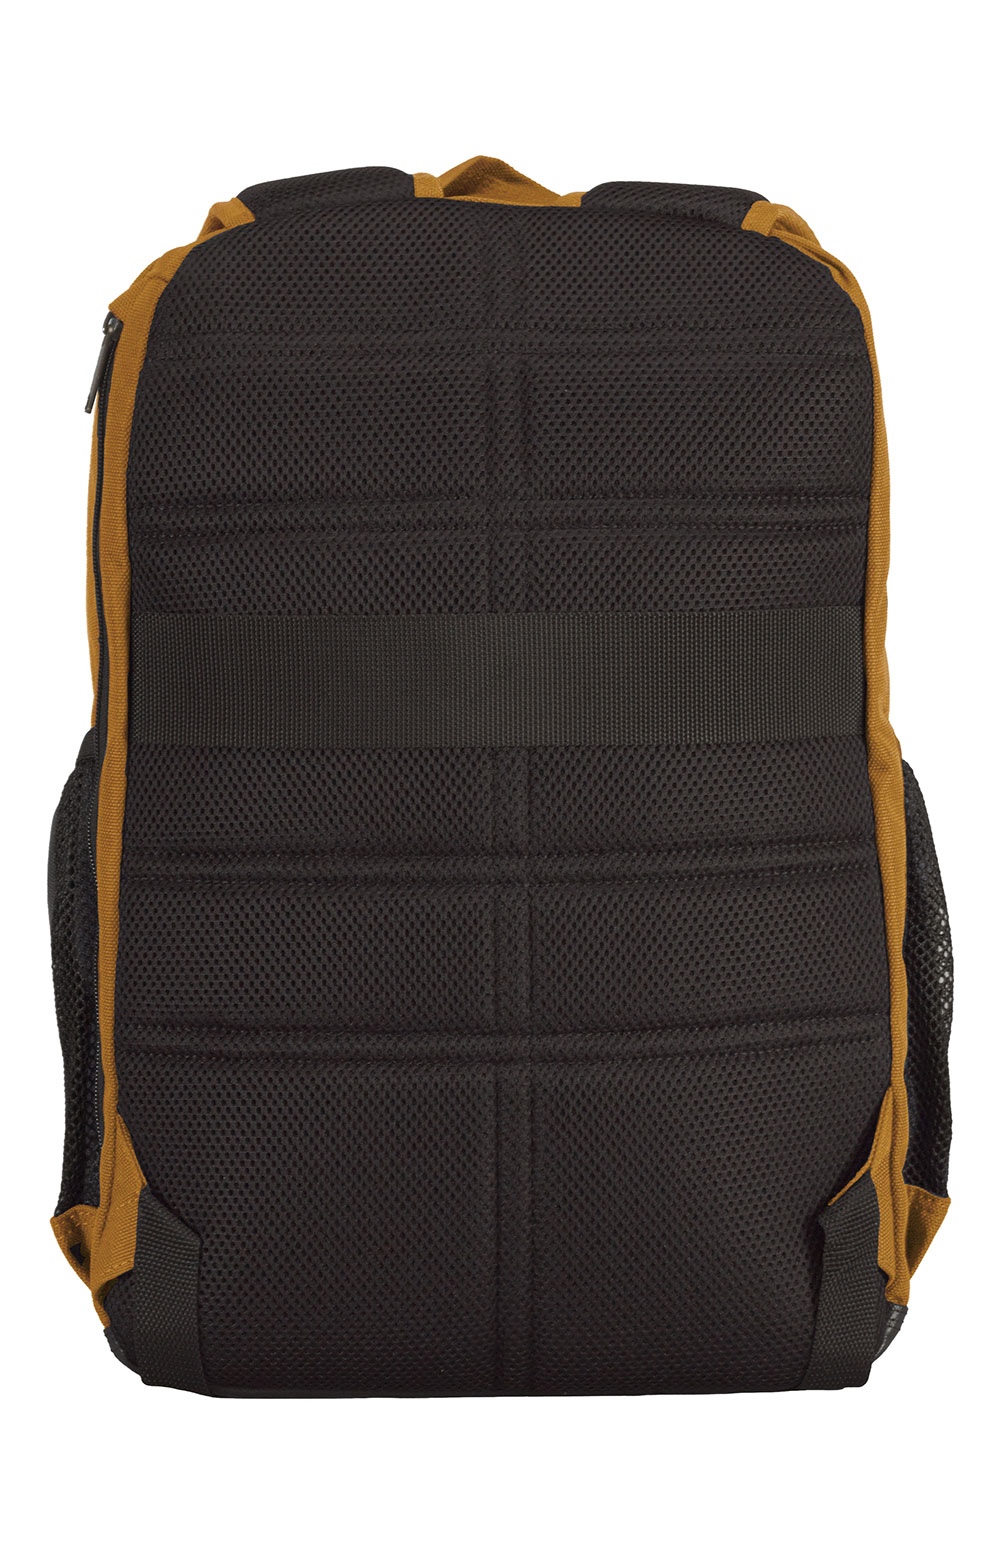 Force Advanced 28L Laptop Backpack - Carhartt Brown  3